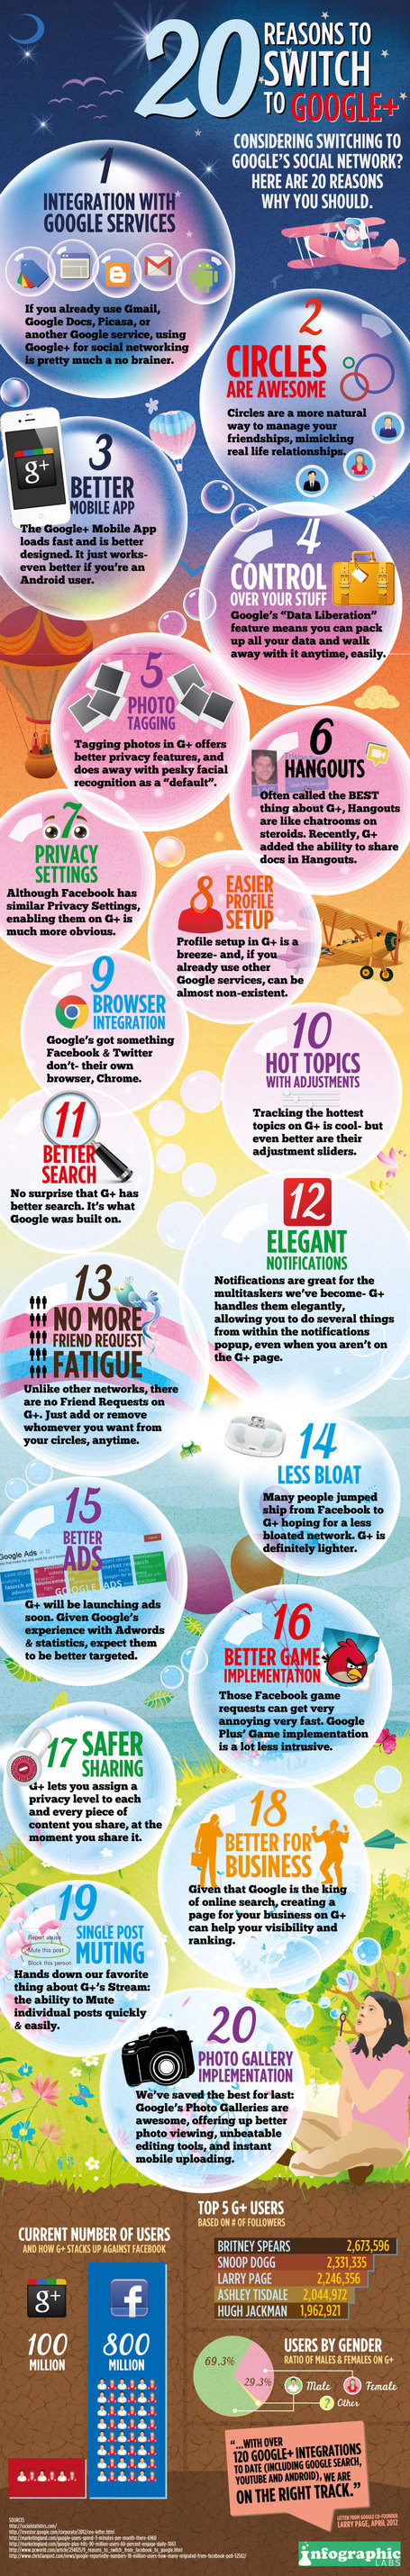 #GooglePlus : 20 Reasons Why you Should Use Google Plus [Infographic] | Social Media e Innovación Tecnológica | Scoop.it